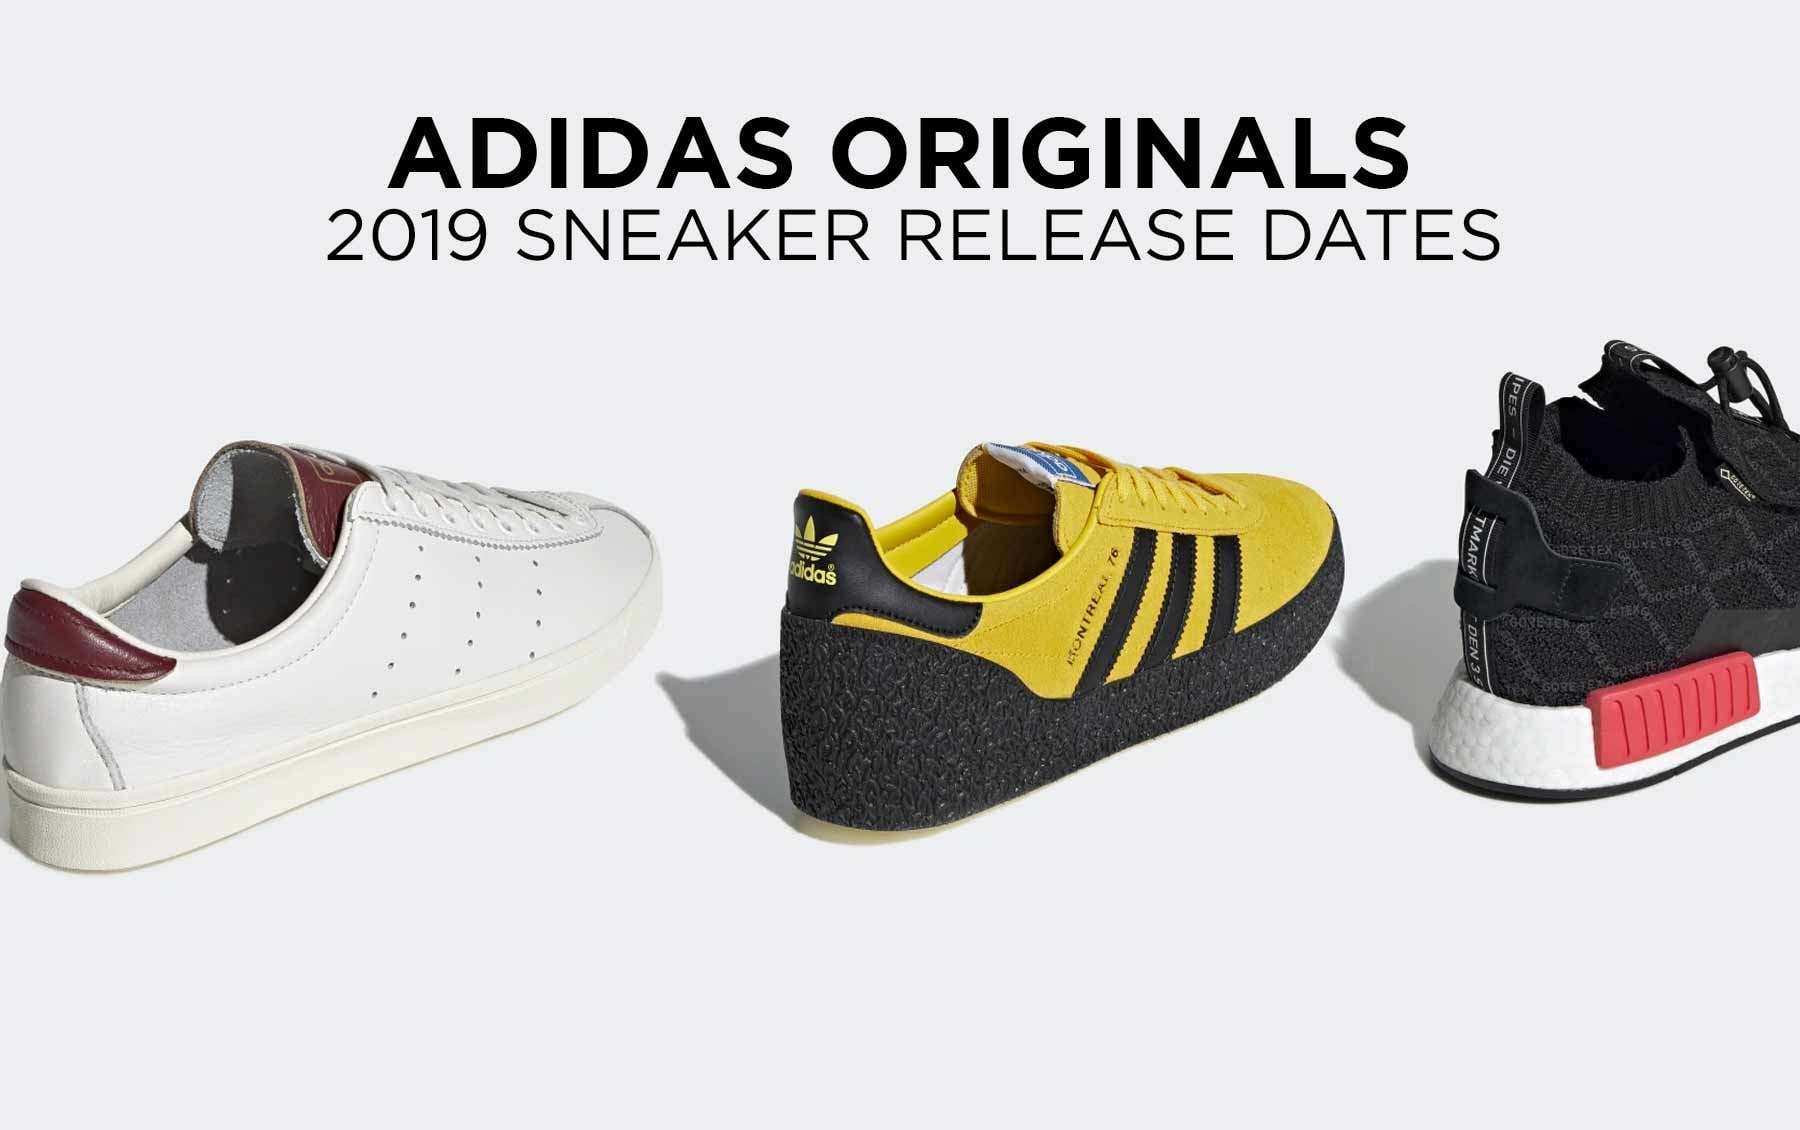 Adidas Sneaker Release Dates 2019 | Stuarts London